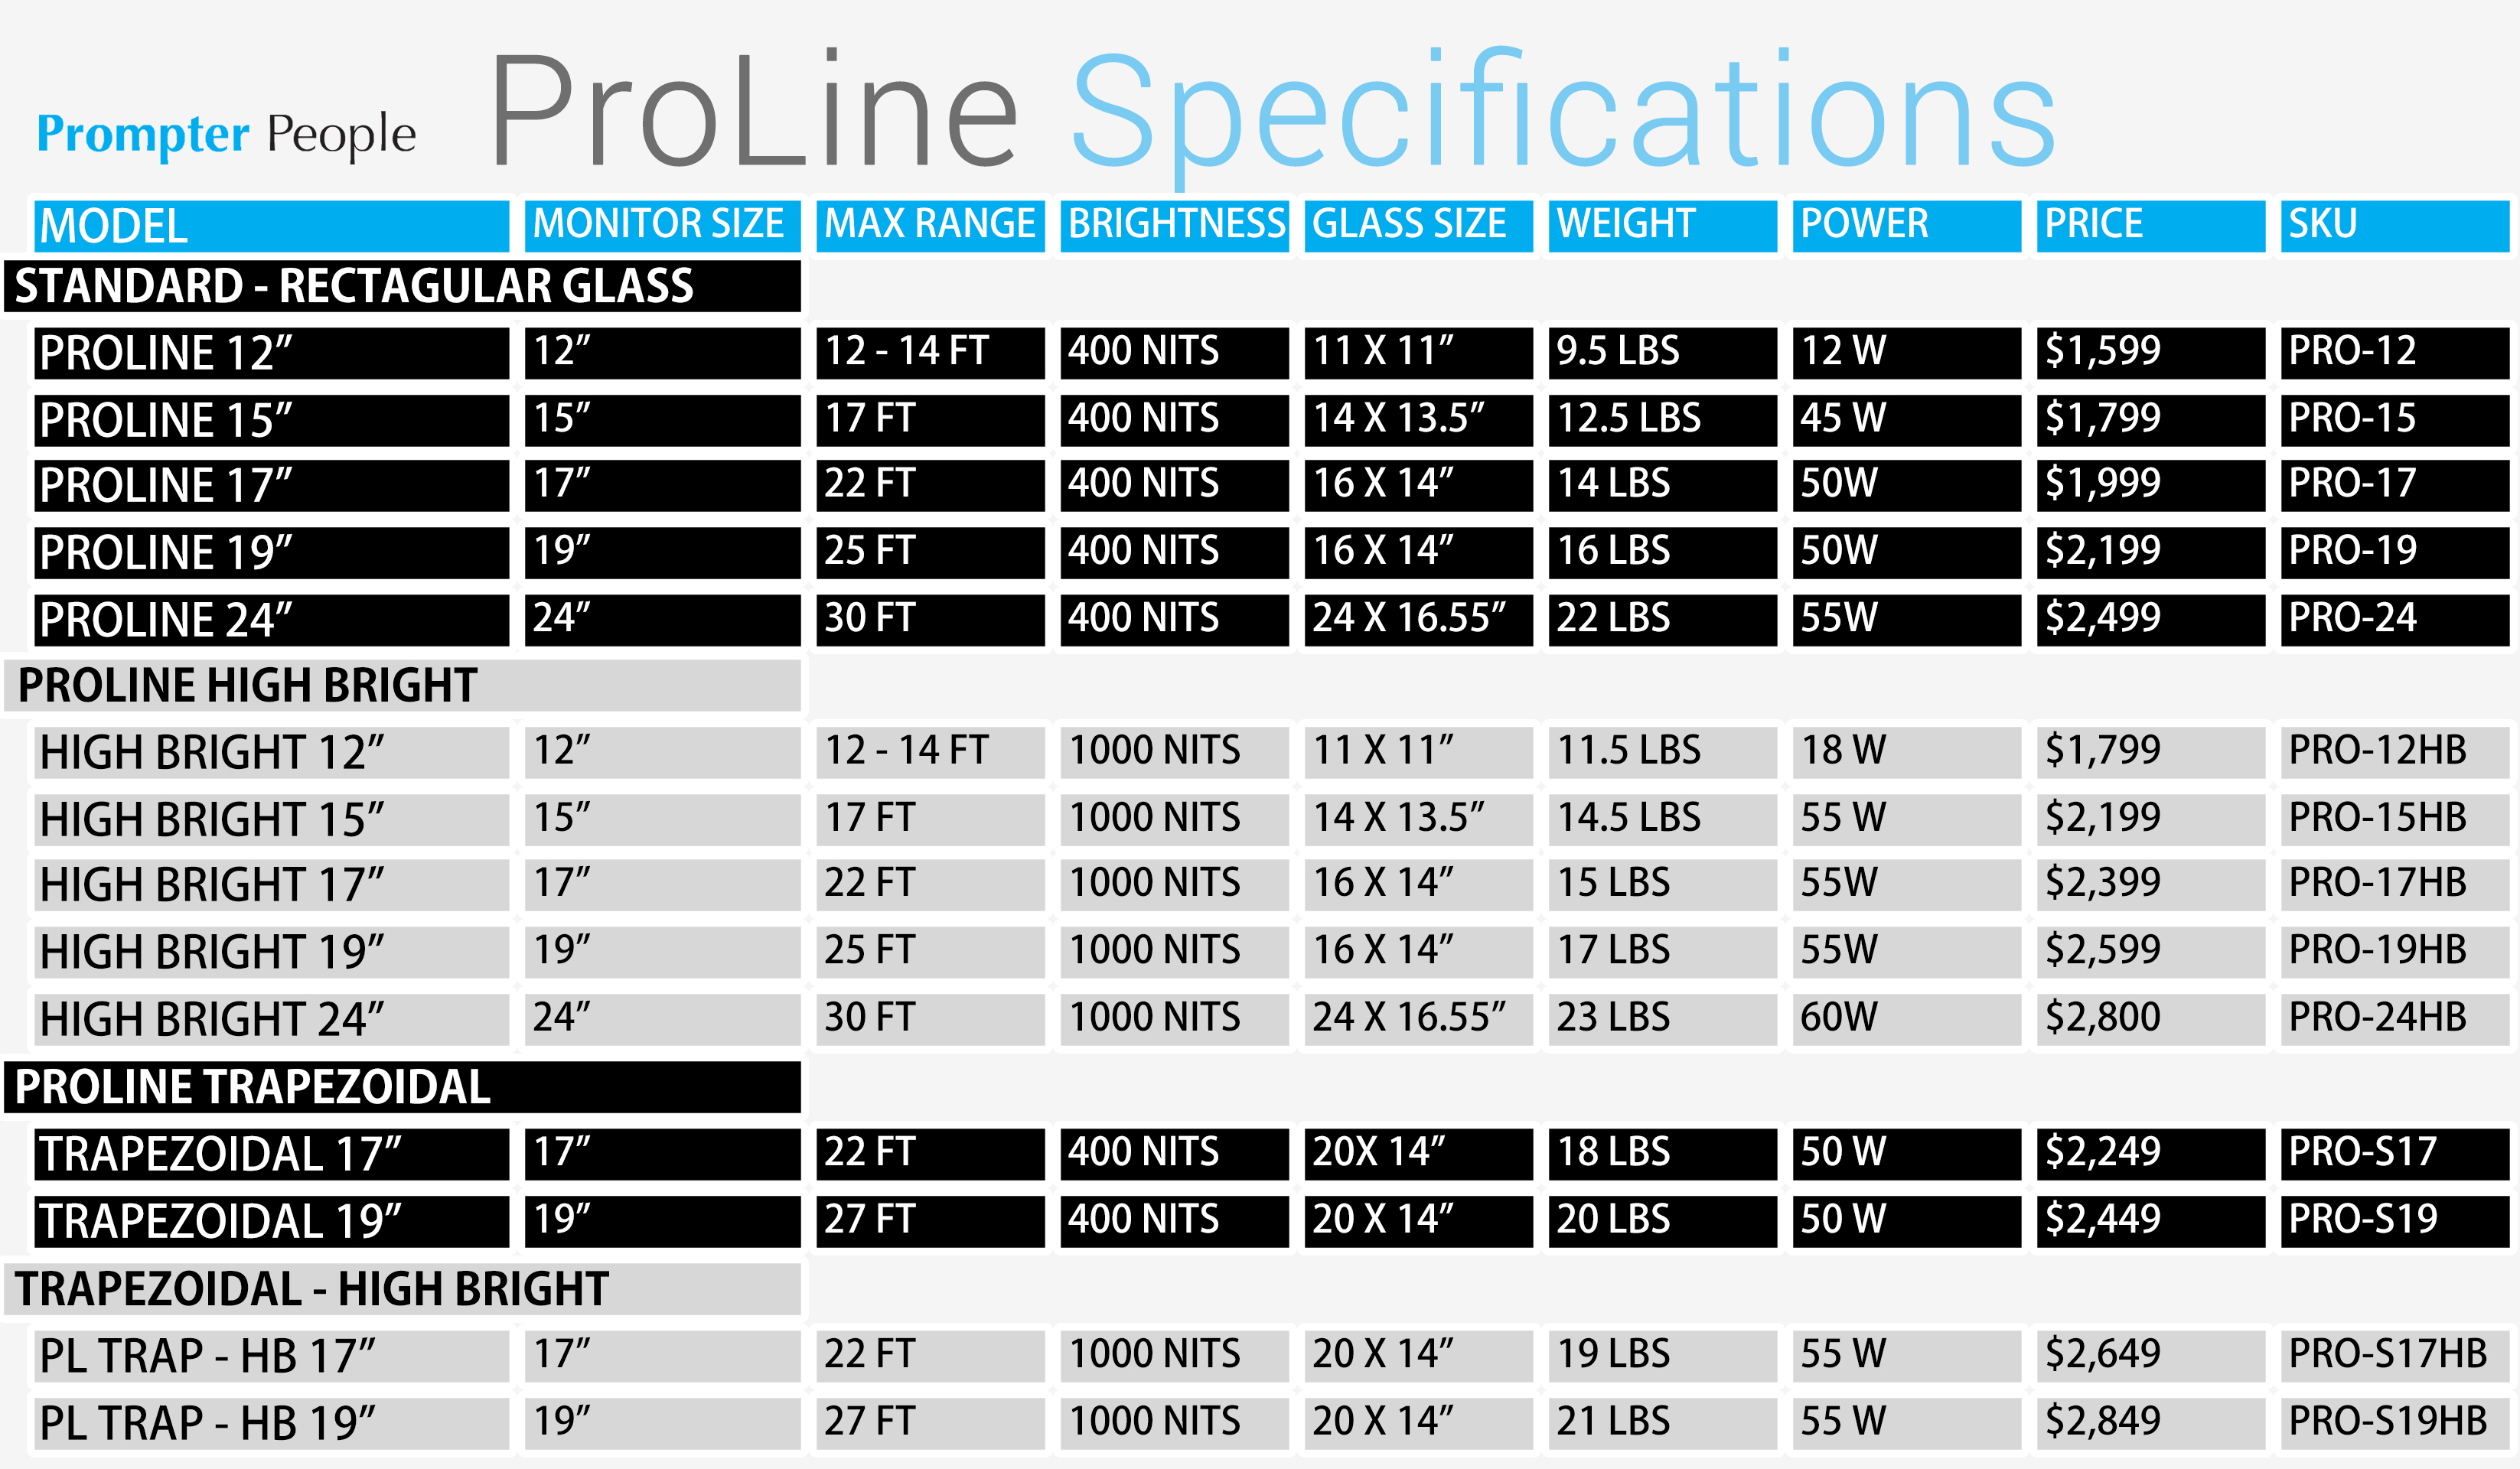 proline-specifications-chart.jpg